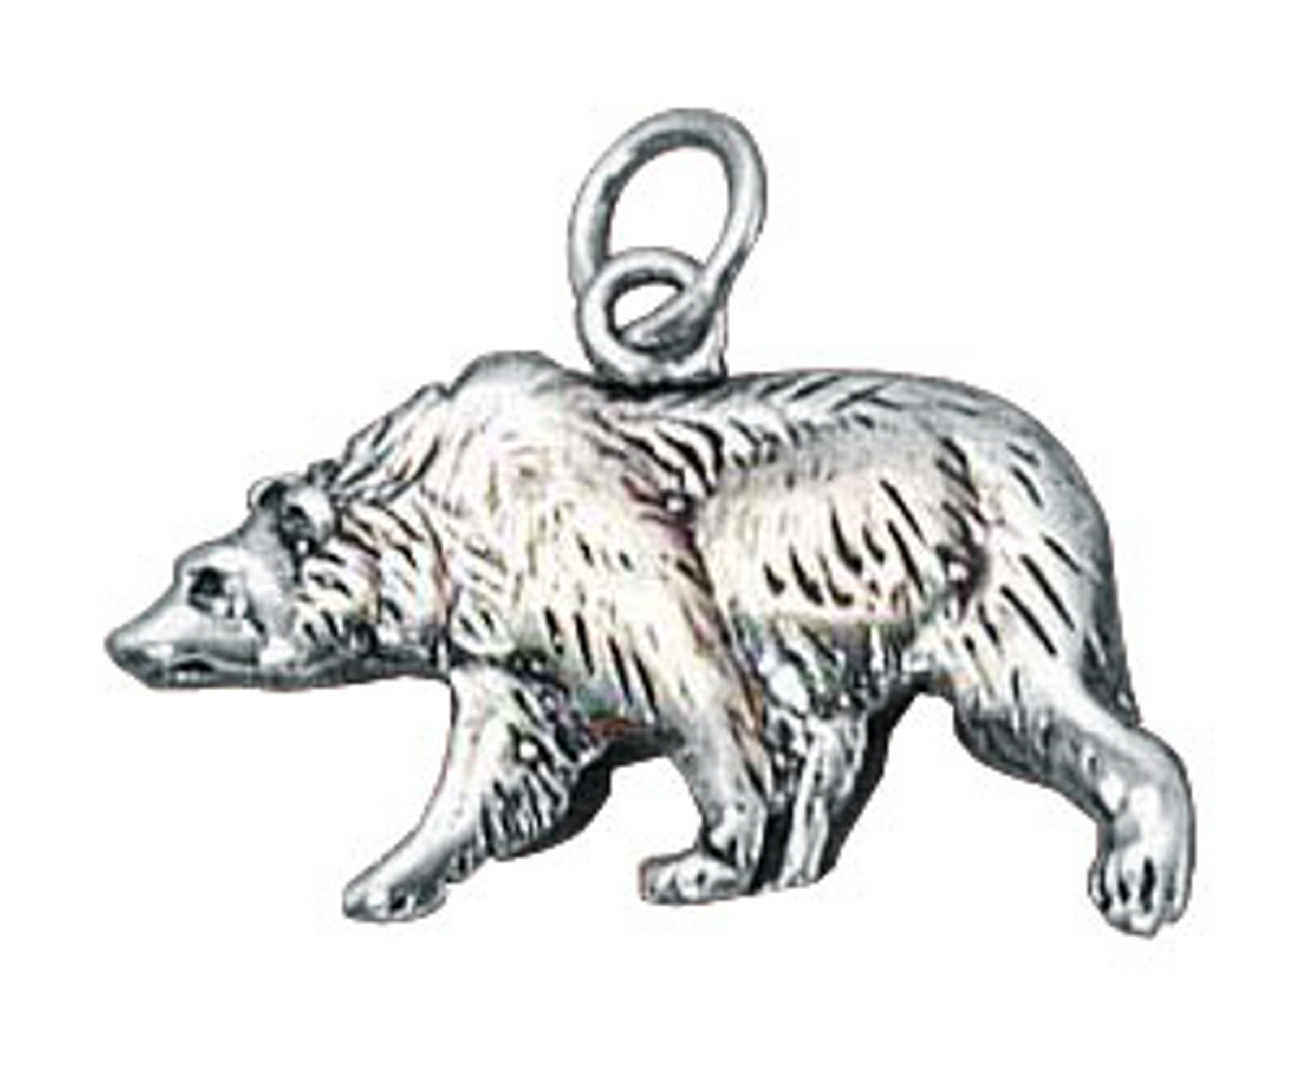 Diego Namez's Vault Sterling-Silver-Antiqued-Finish-Flat-Grizzly-Bear-Charm-ch-cdgj-cfaw